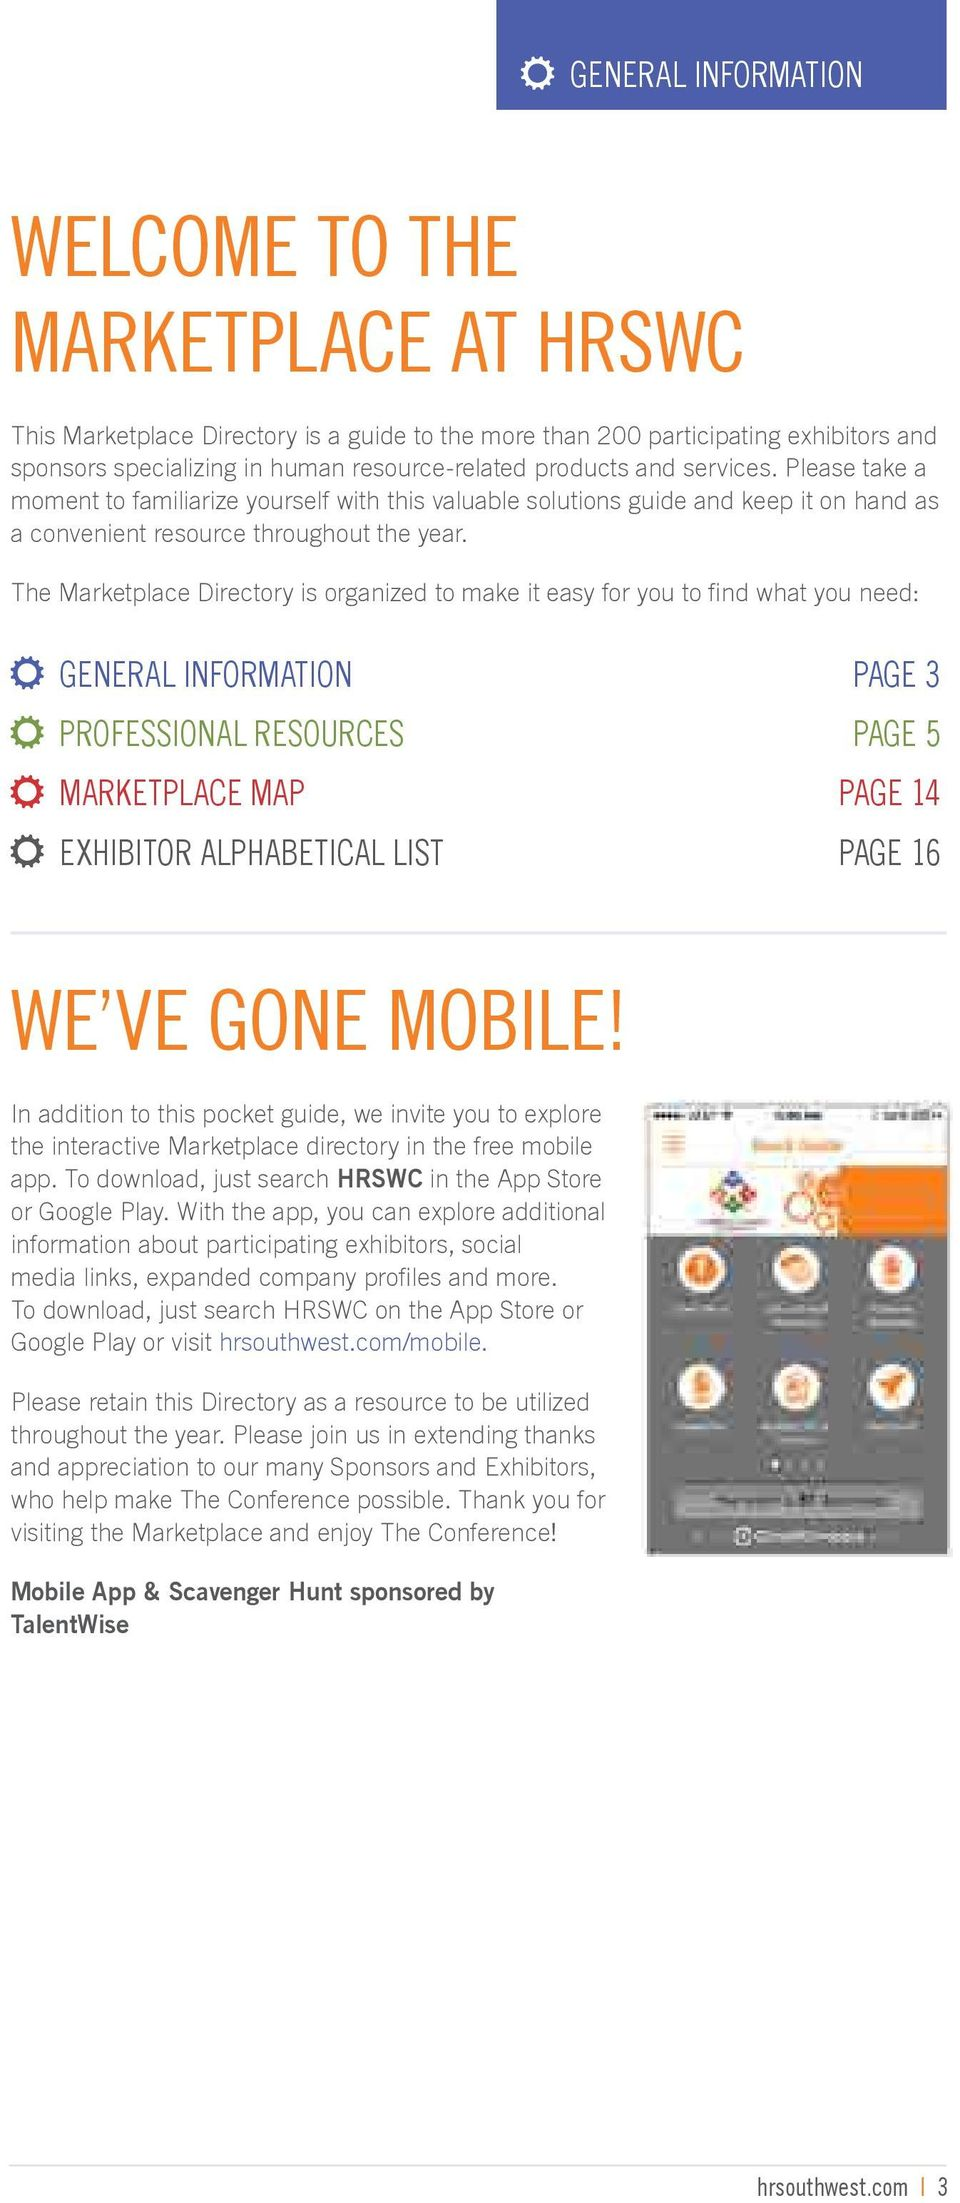 The Marketplace Directory is organized to make it easy for you to find what you need: General Information Page 3 Professional Resources Page 5 Marketplace Map Page 14 Exhibitor Alphabetical List Page